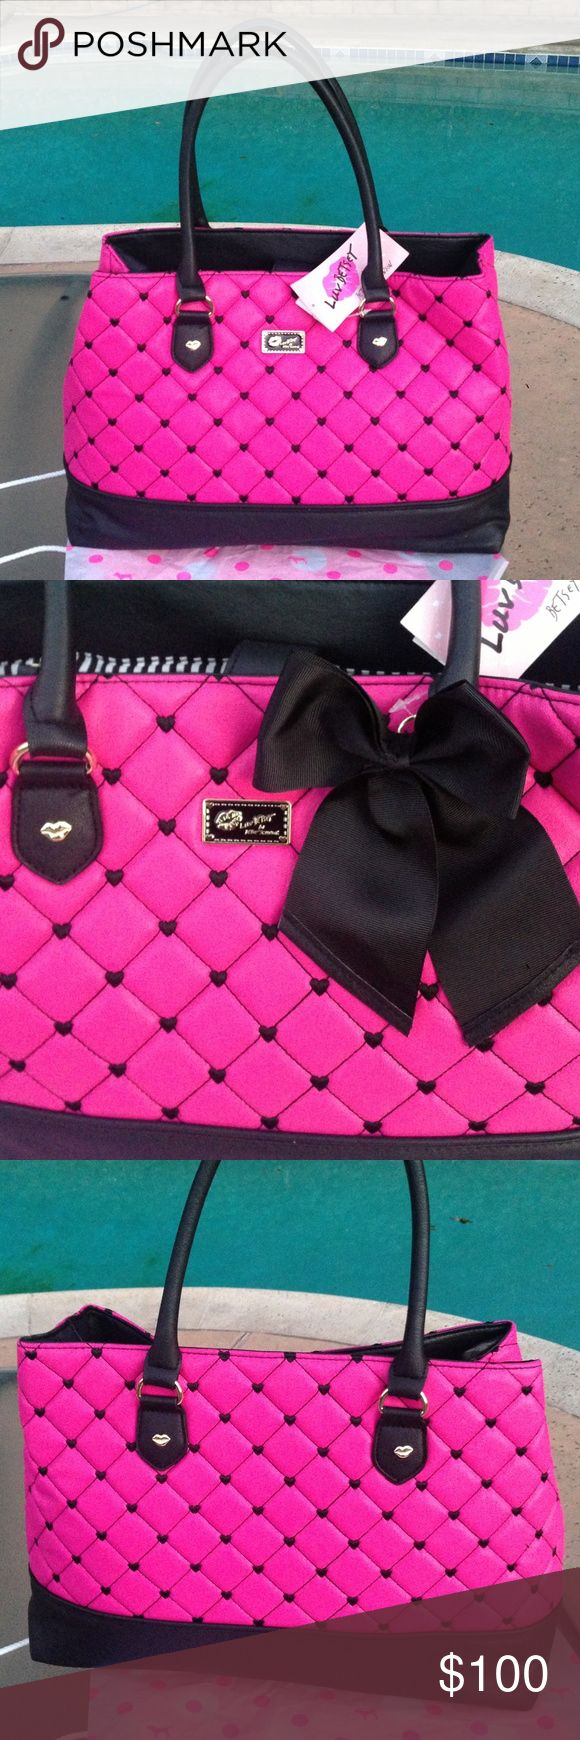 Large Betsey Johnson Purse Brand new! Large bag can be used as a diaper bag as well! Betsey Johnson Bags